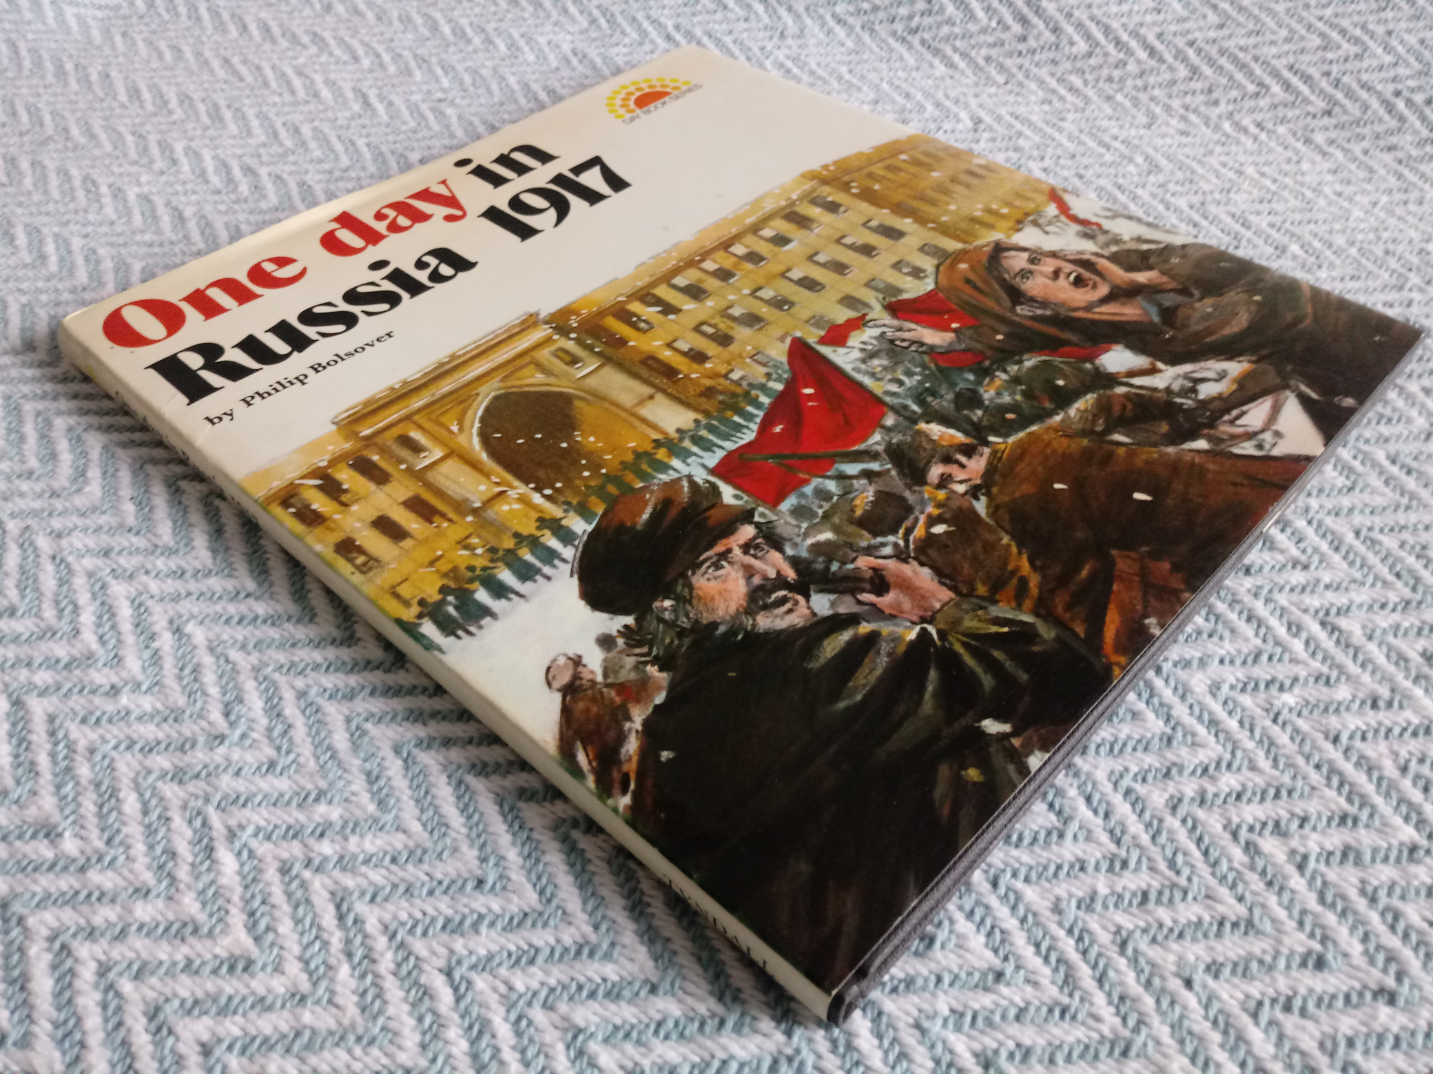 One Day in Russia 1917 by Philip Bolsover hardback book 48 pages Published 1974 Robert Tyndall